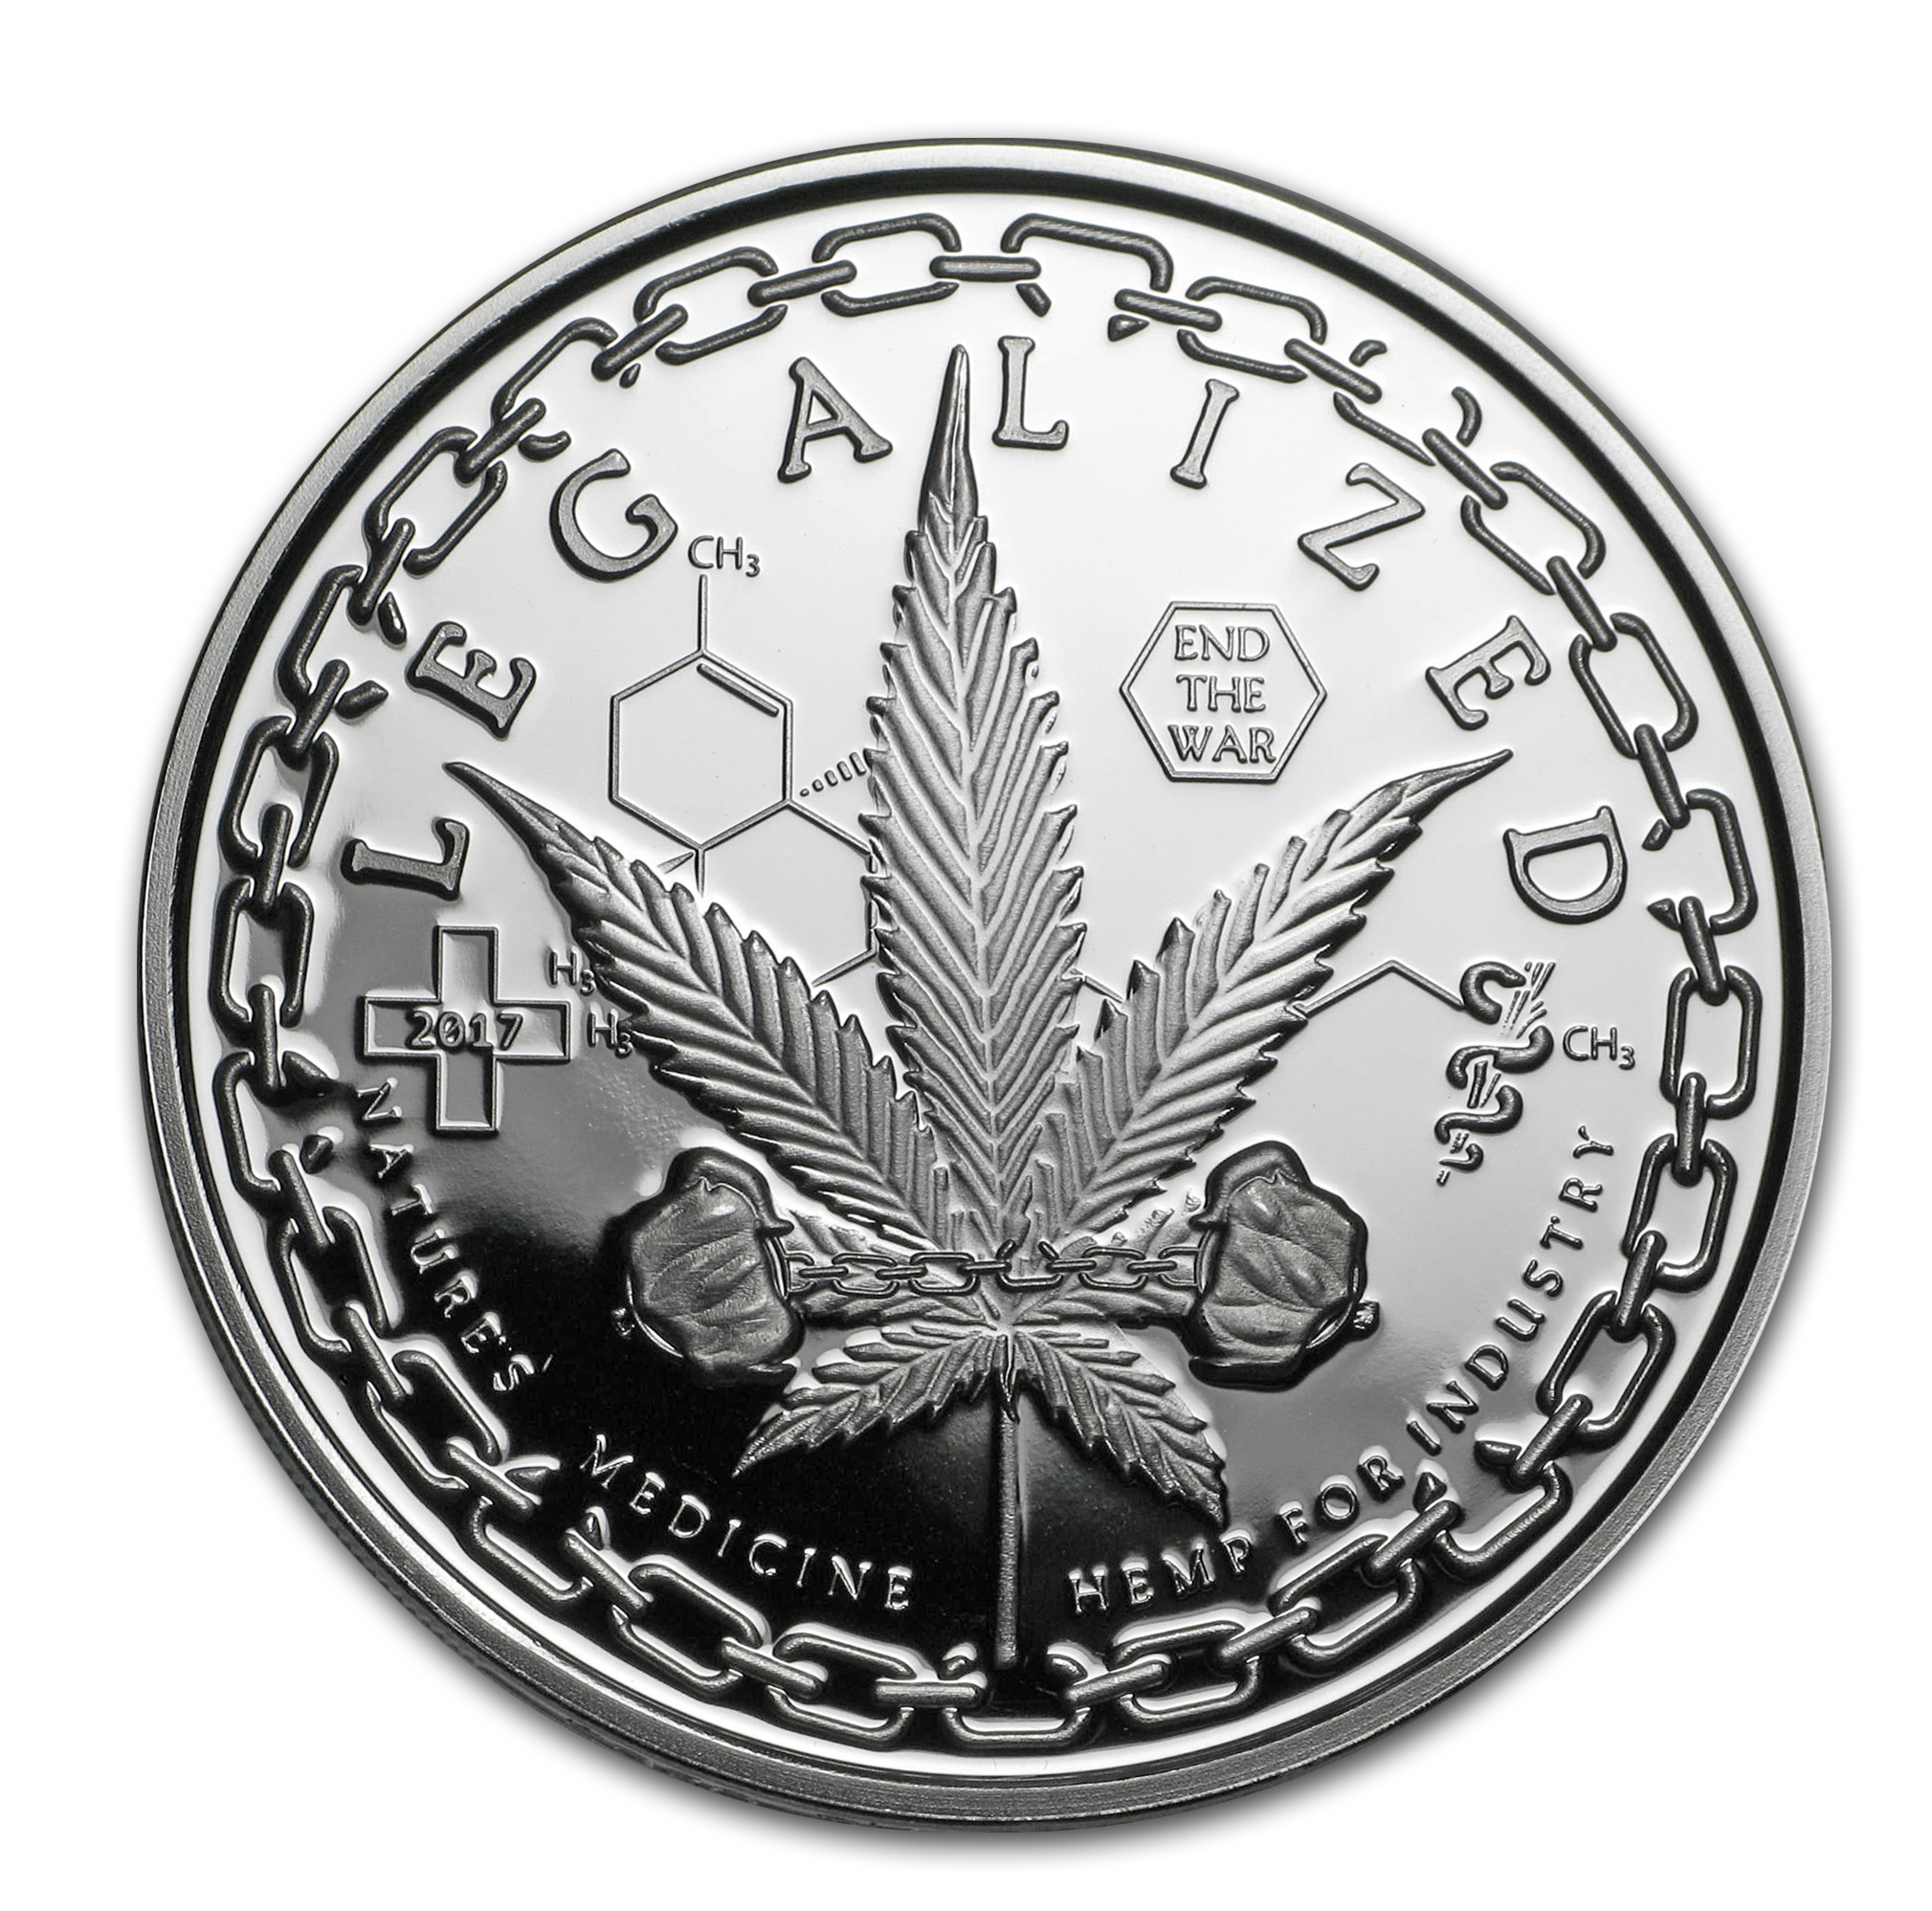 1 oz Silver Proof Round - Legalized (Colorado)